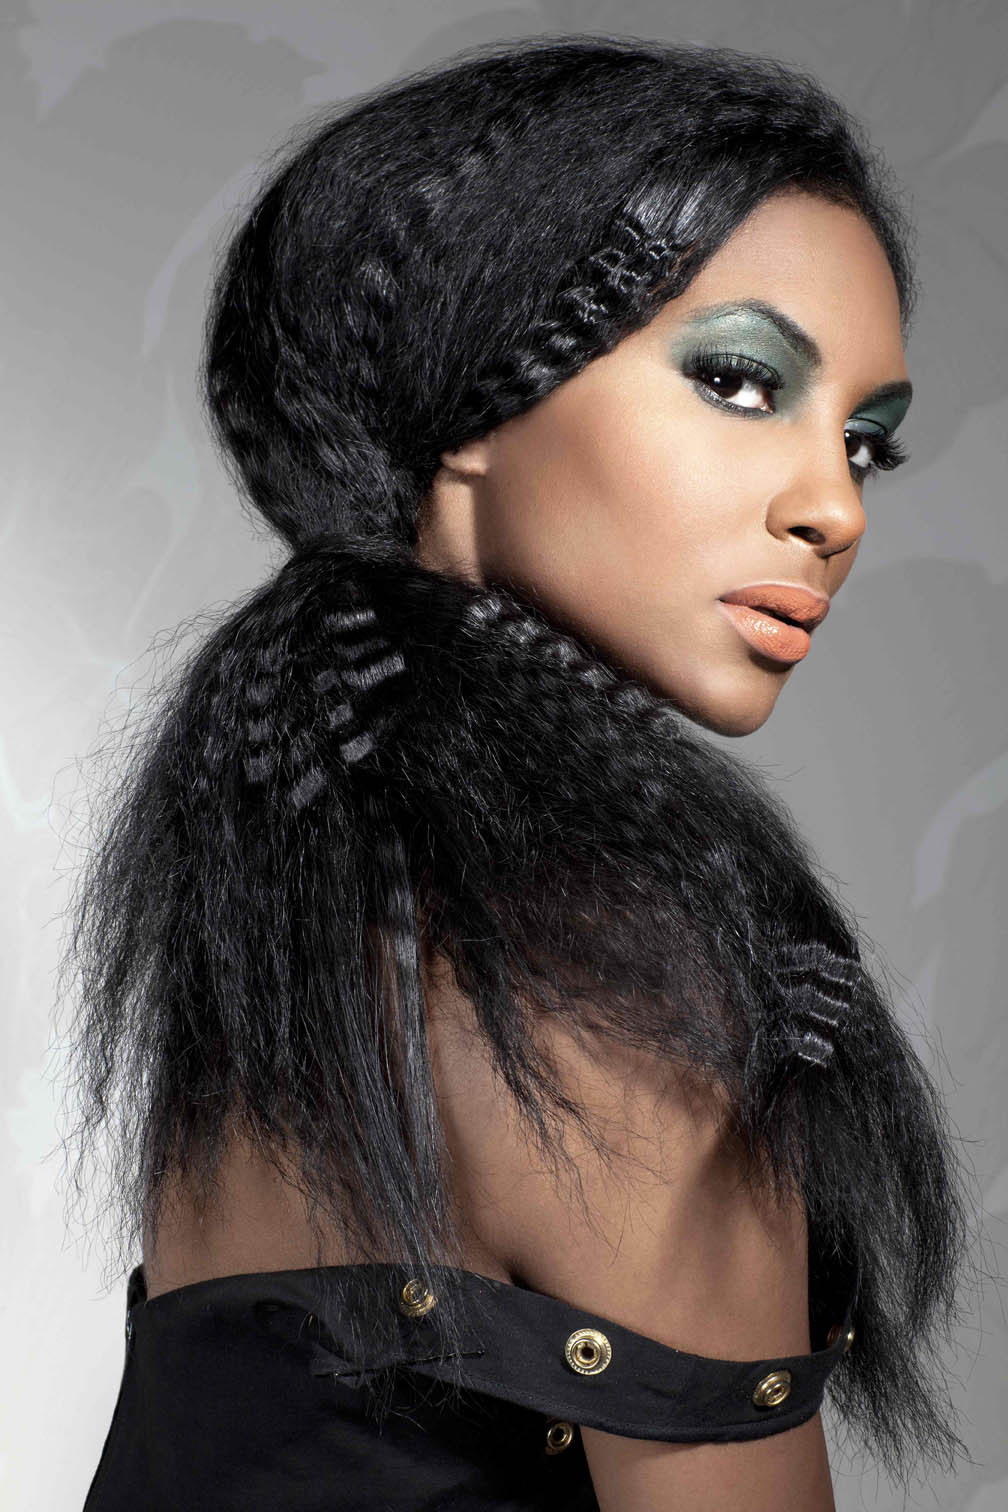 Crimped Hairstyles Are Fashionable